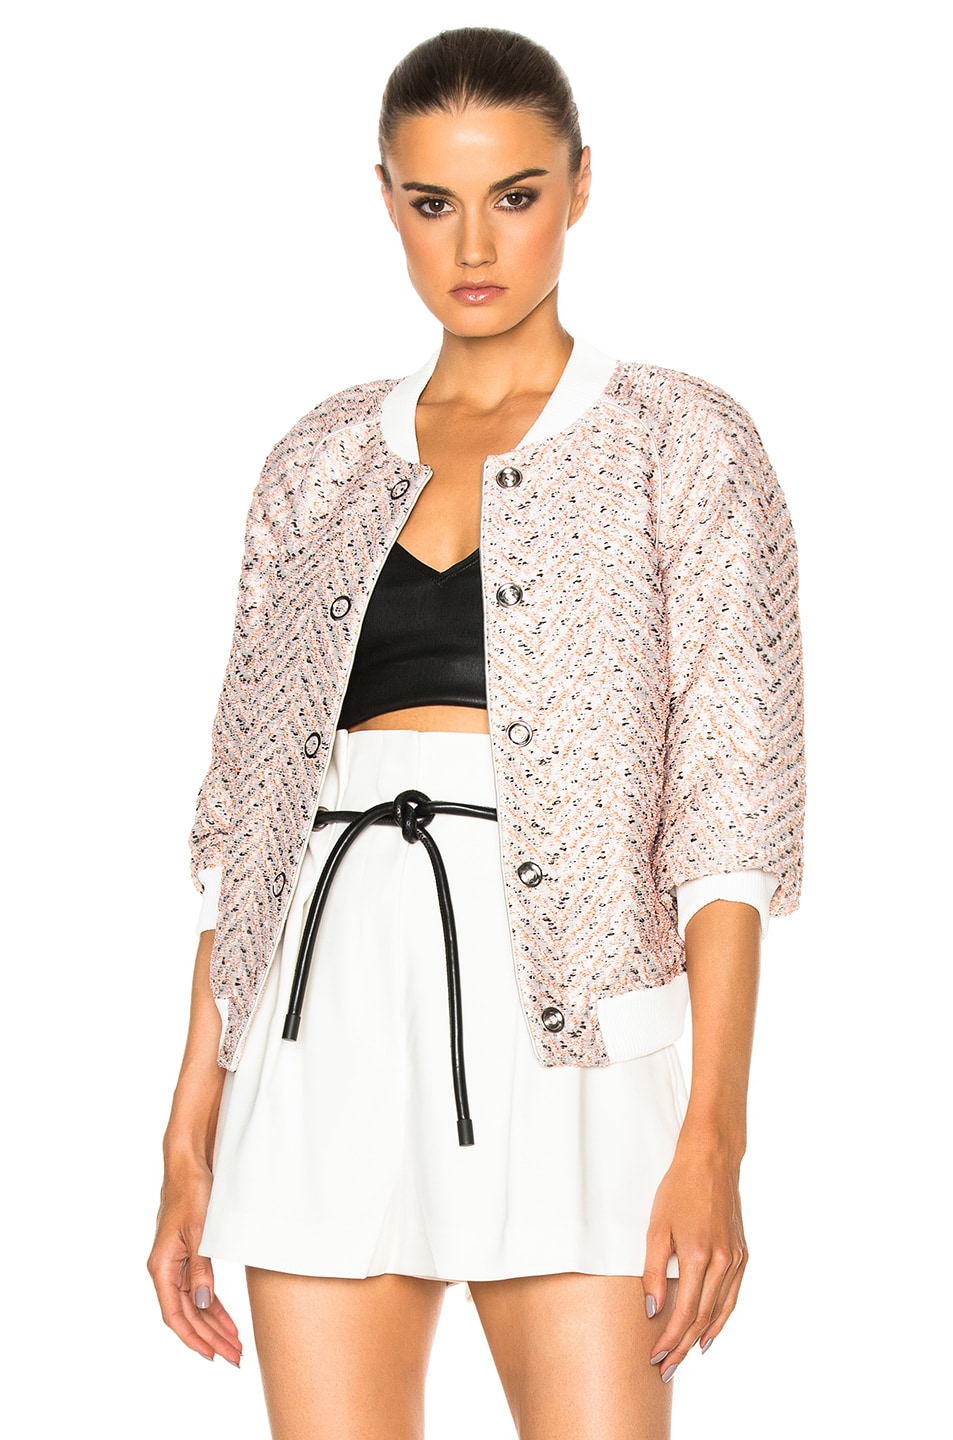 Image 1 of 3.1 phillip lim Bomber in Alabaster